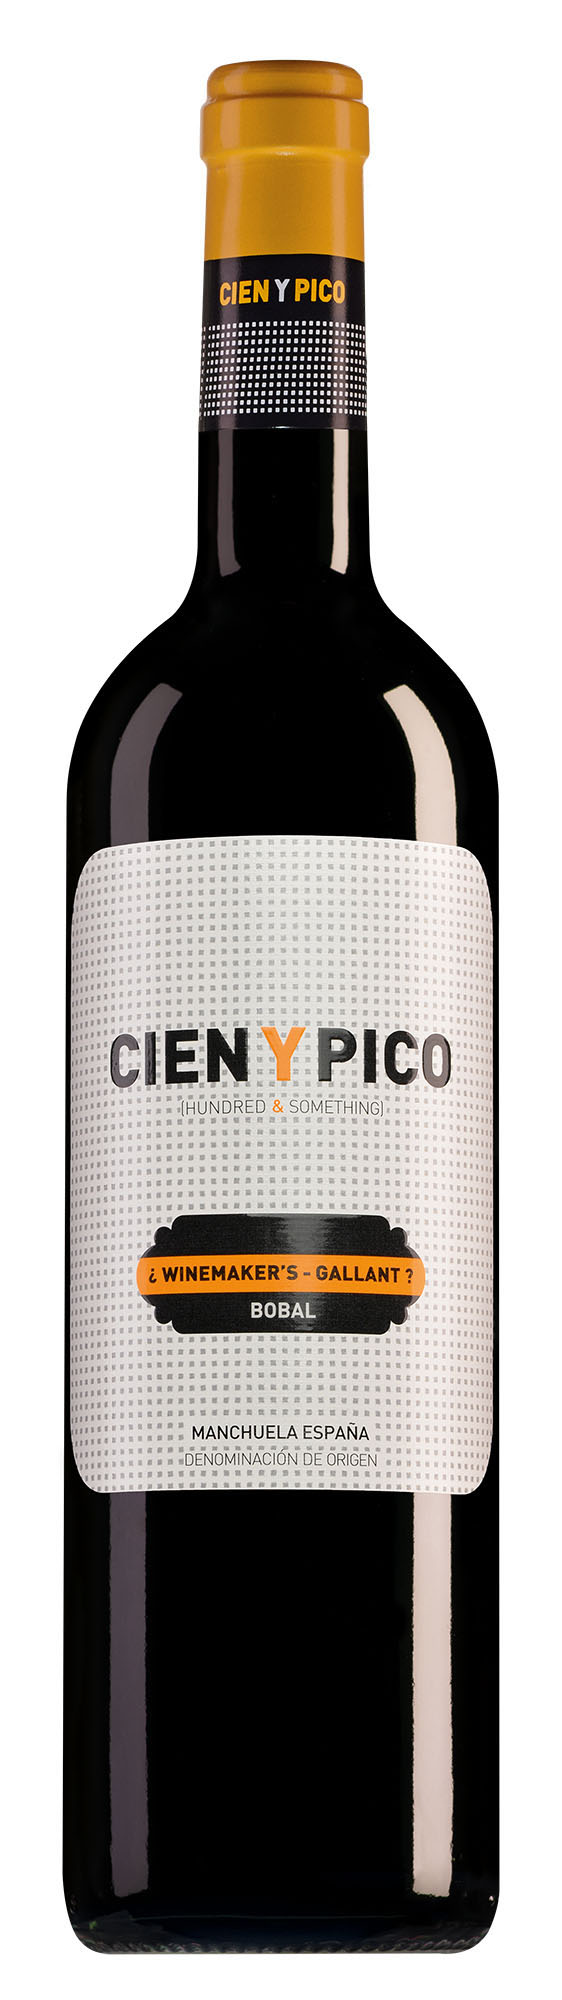 Cien y Pico Manchuela Winemaker's-Gallant Bobal